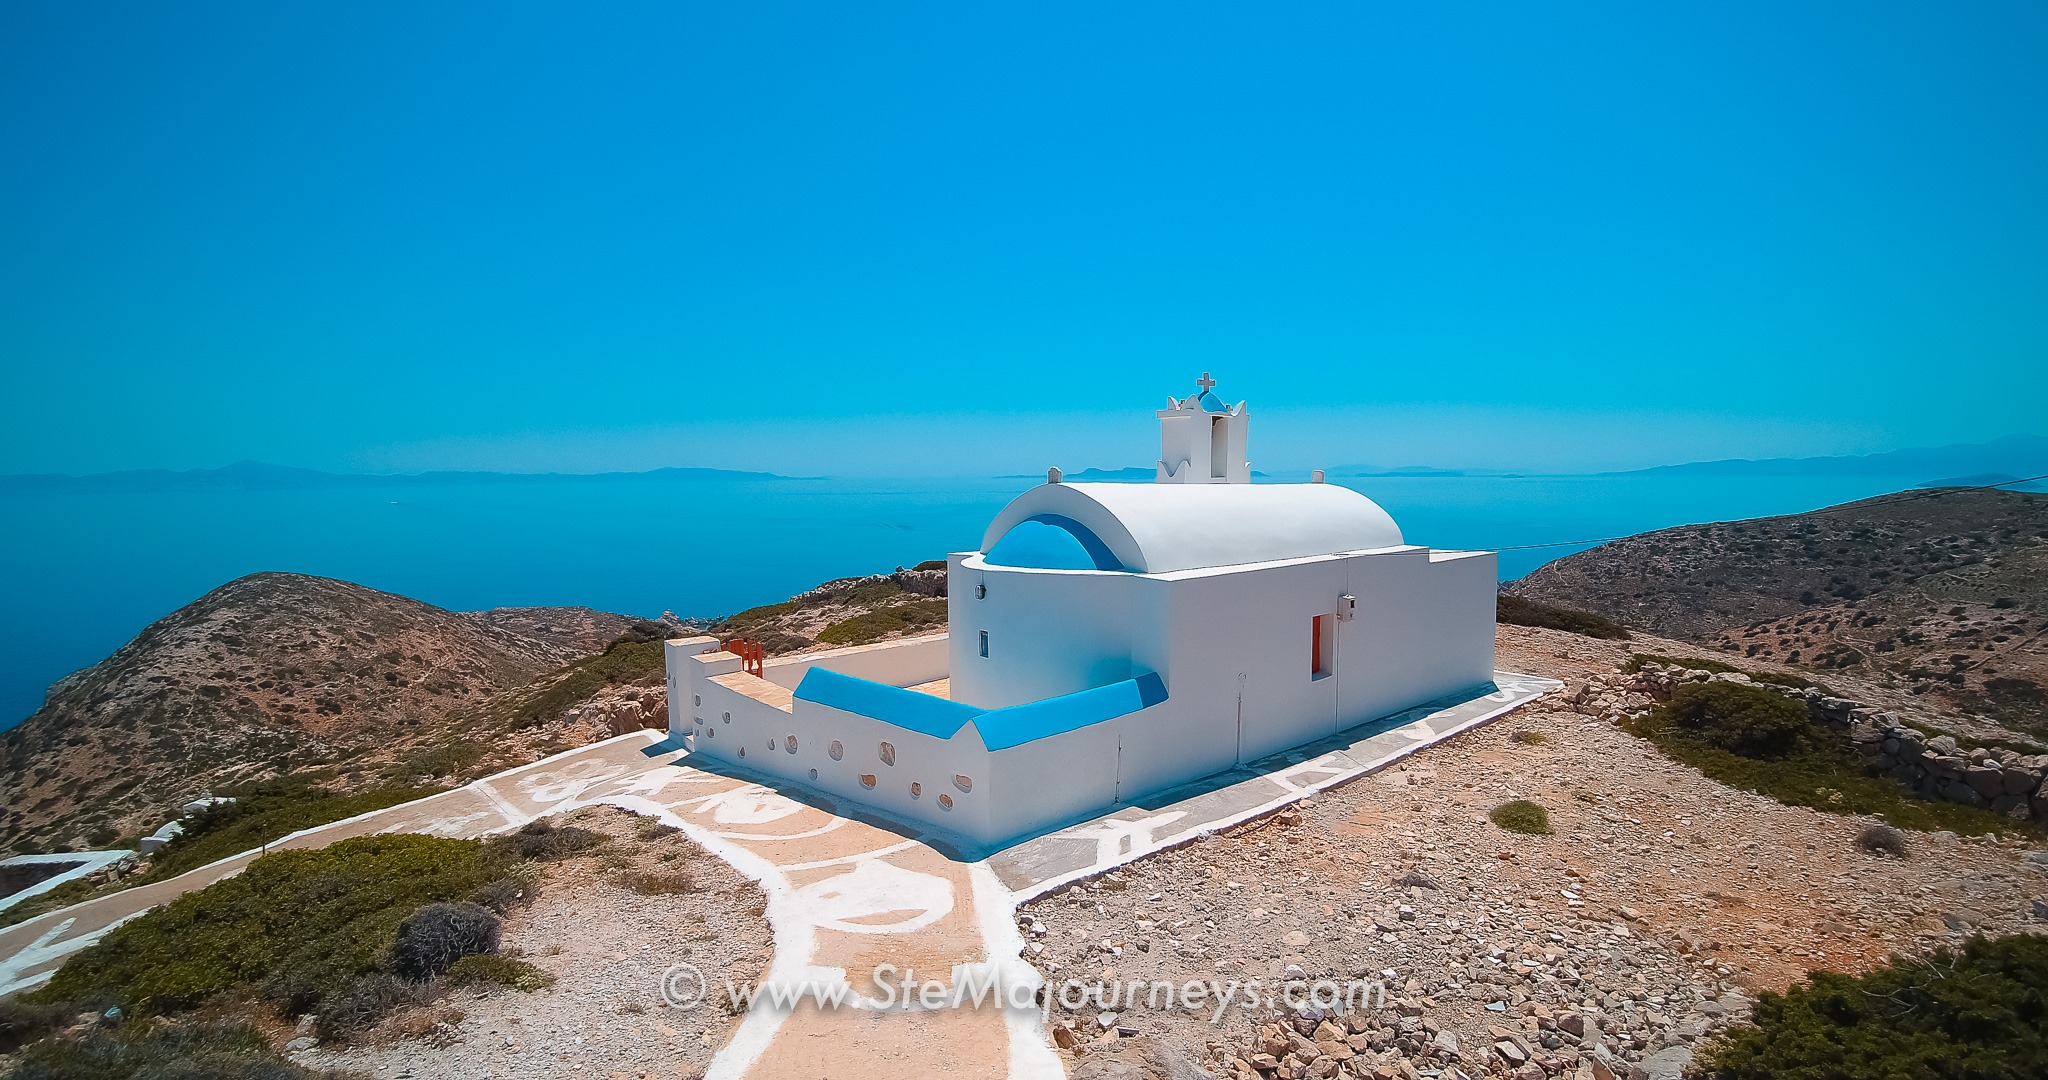 View of a church on the Aegean sea. The church is white and blue, built on a hill. The surrounding nature is dry. The ocean is in the background